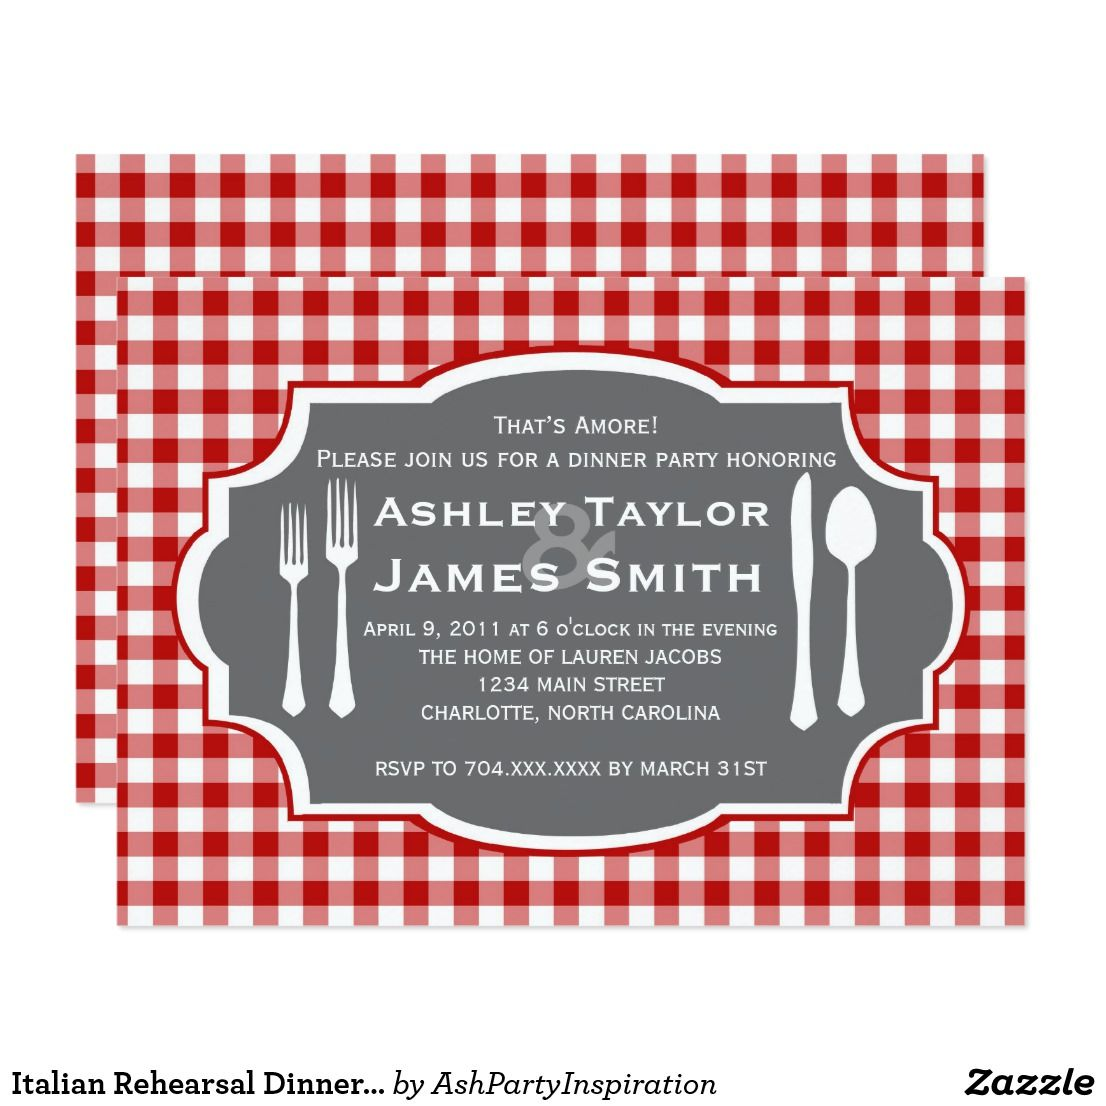 Italian Rehearsal Dinner Invitation | Rehearsal dinner invitations ...